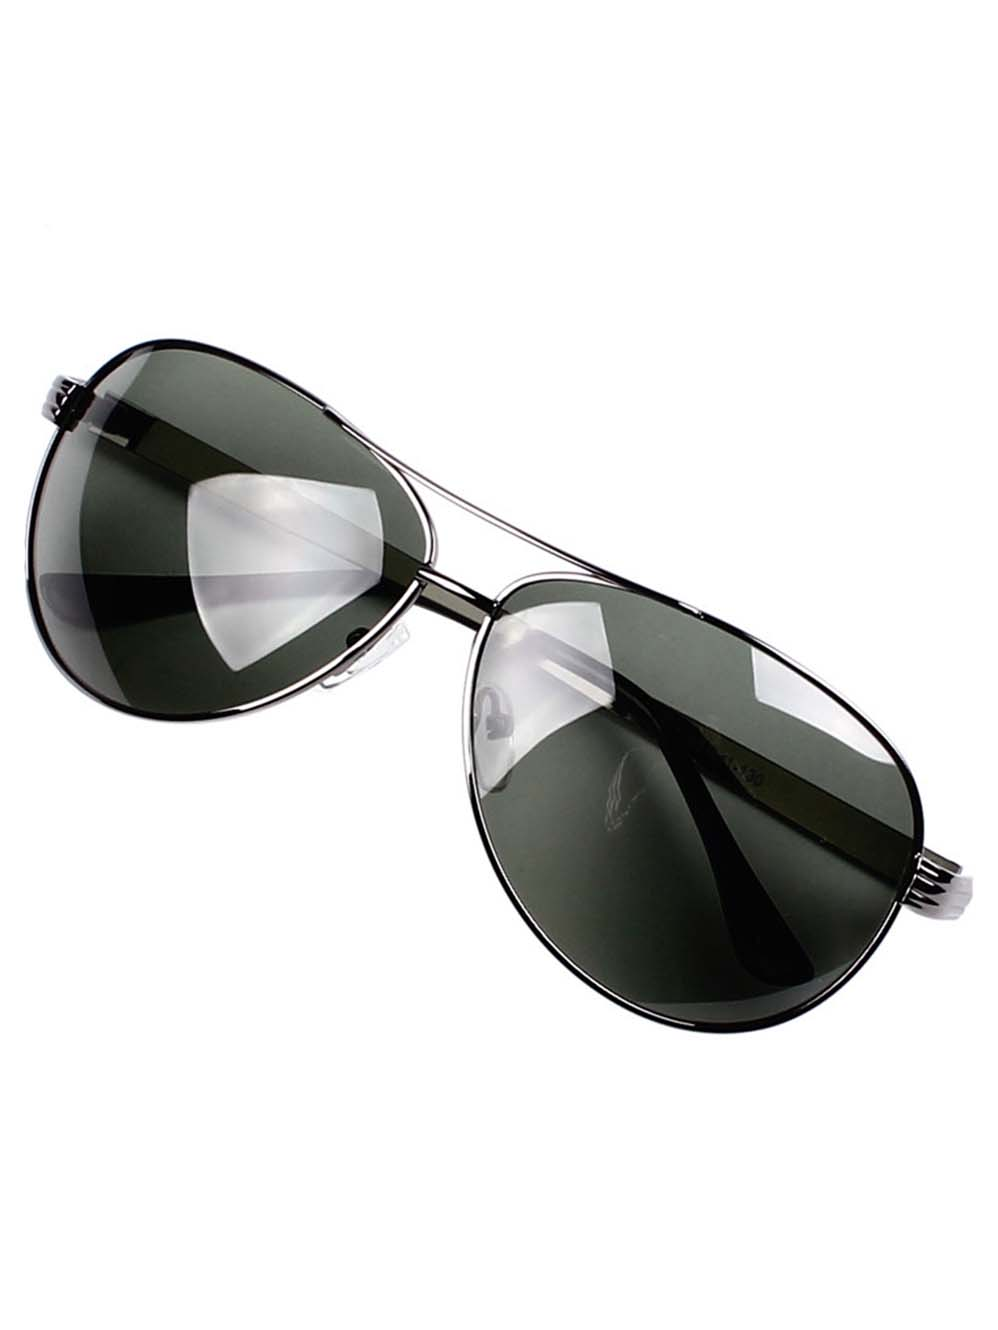 infrared sunglasses for marked cards